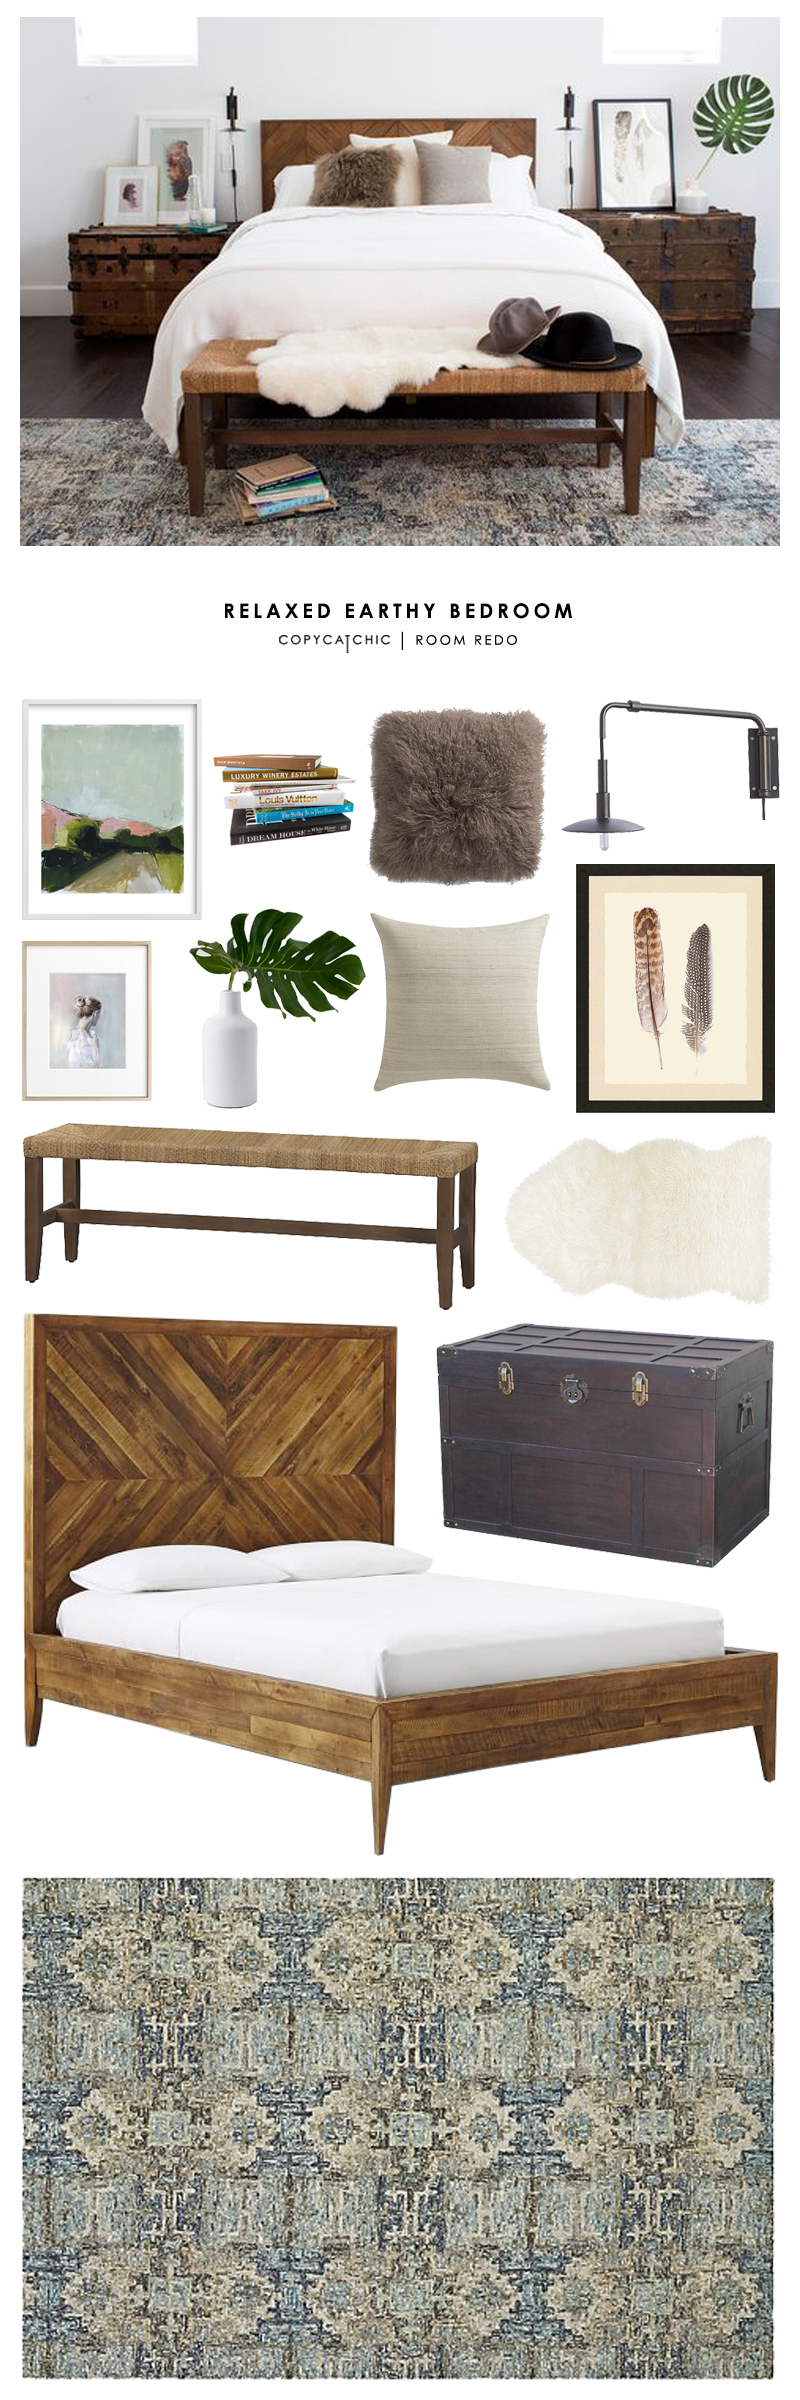 copy cat chic room redo relaxed earthy bedroom copy